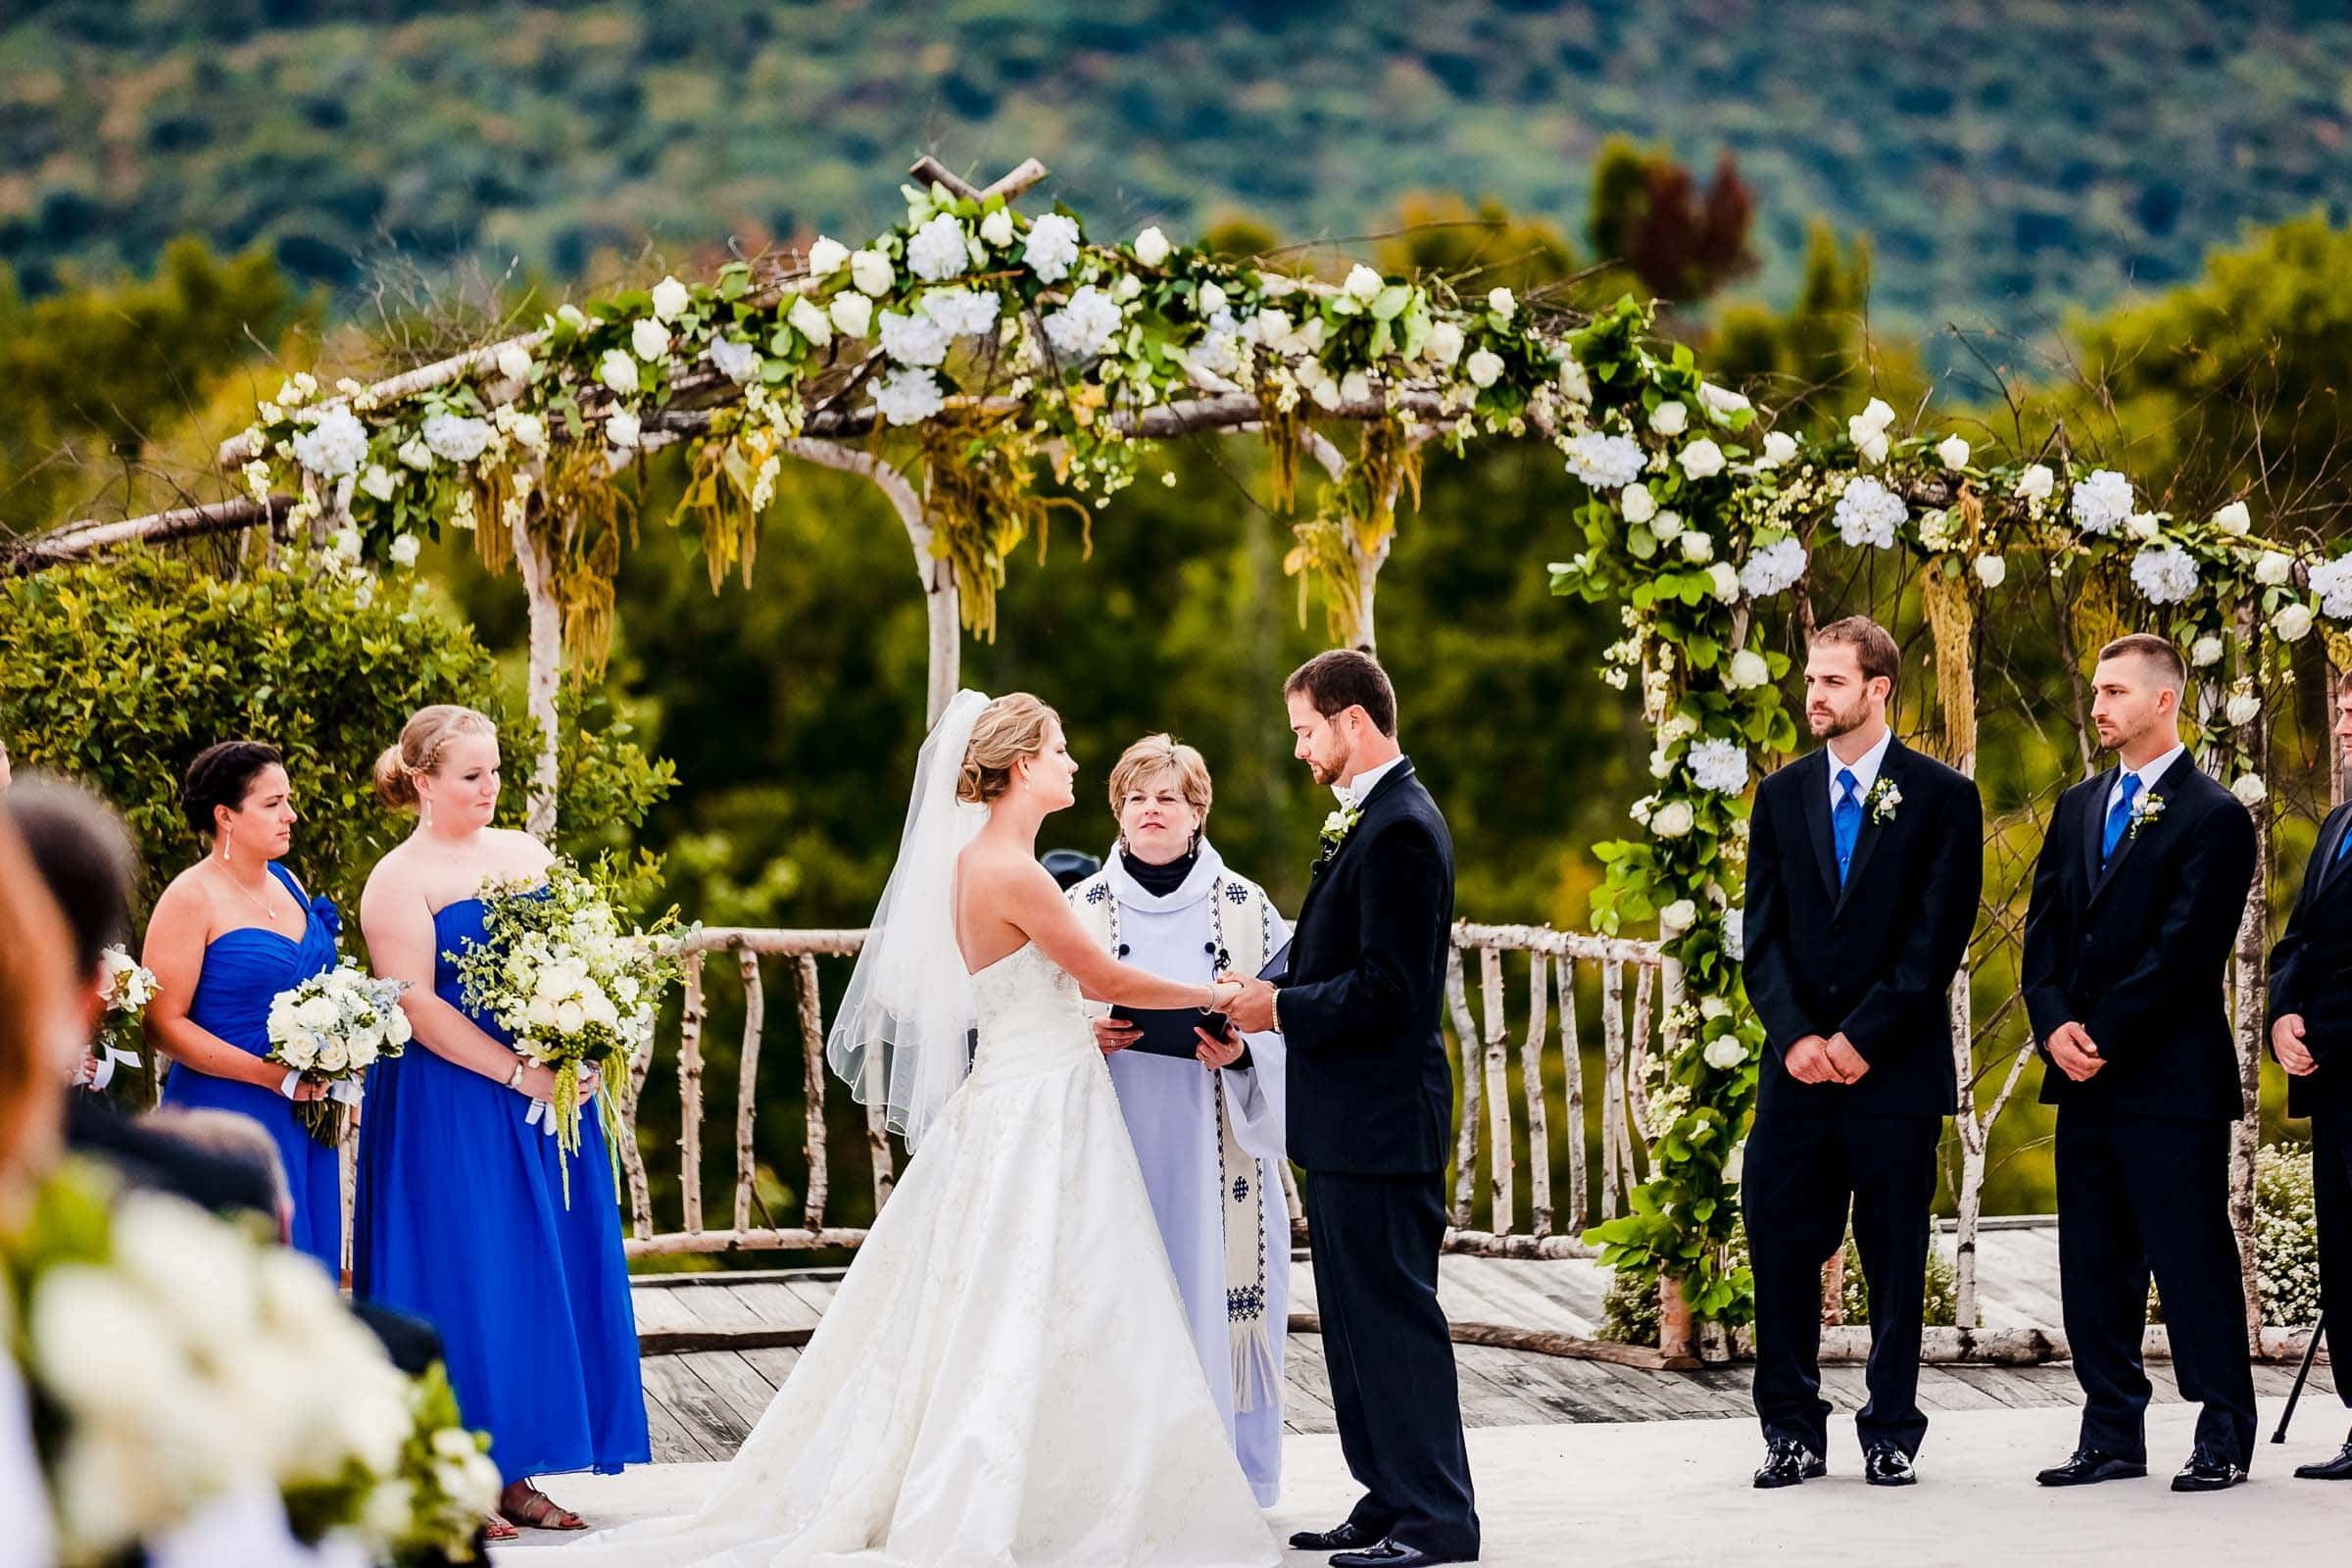 Bride and groom exchanging vows with a vast background view during their Trapp Family Lodge wedding ceremony in Stowe, Vermont.